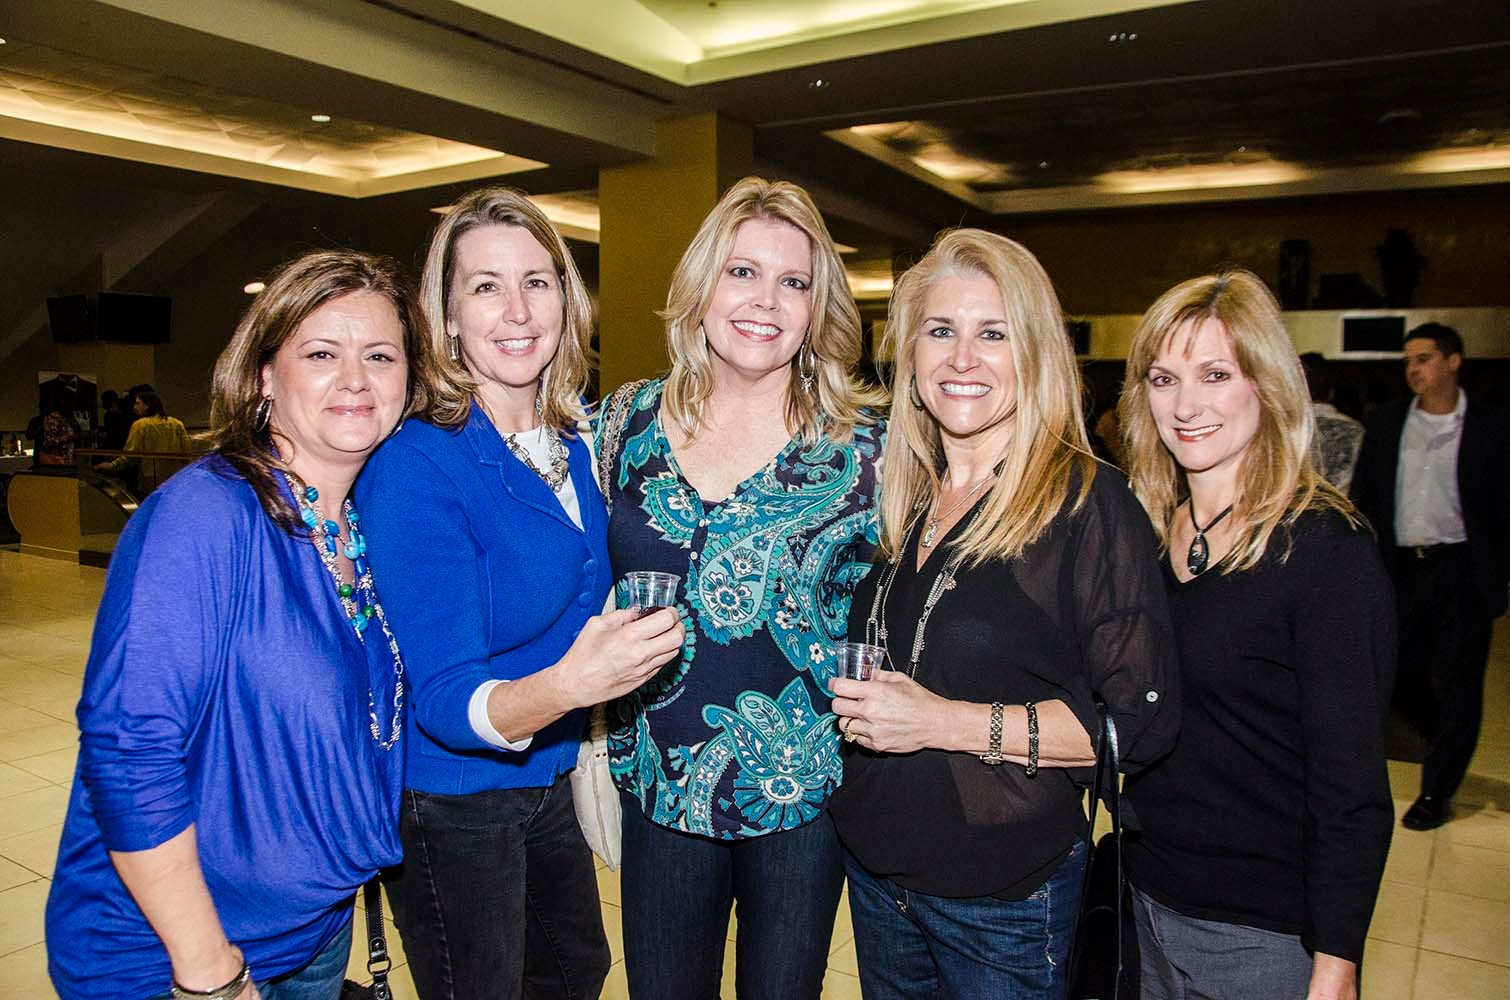 Silvia Heaherley, Julie Bentley, Cathy Cowart, Kimberly King, Judy Lassiter